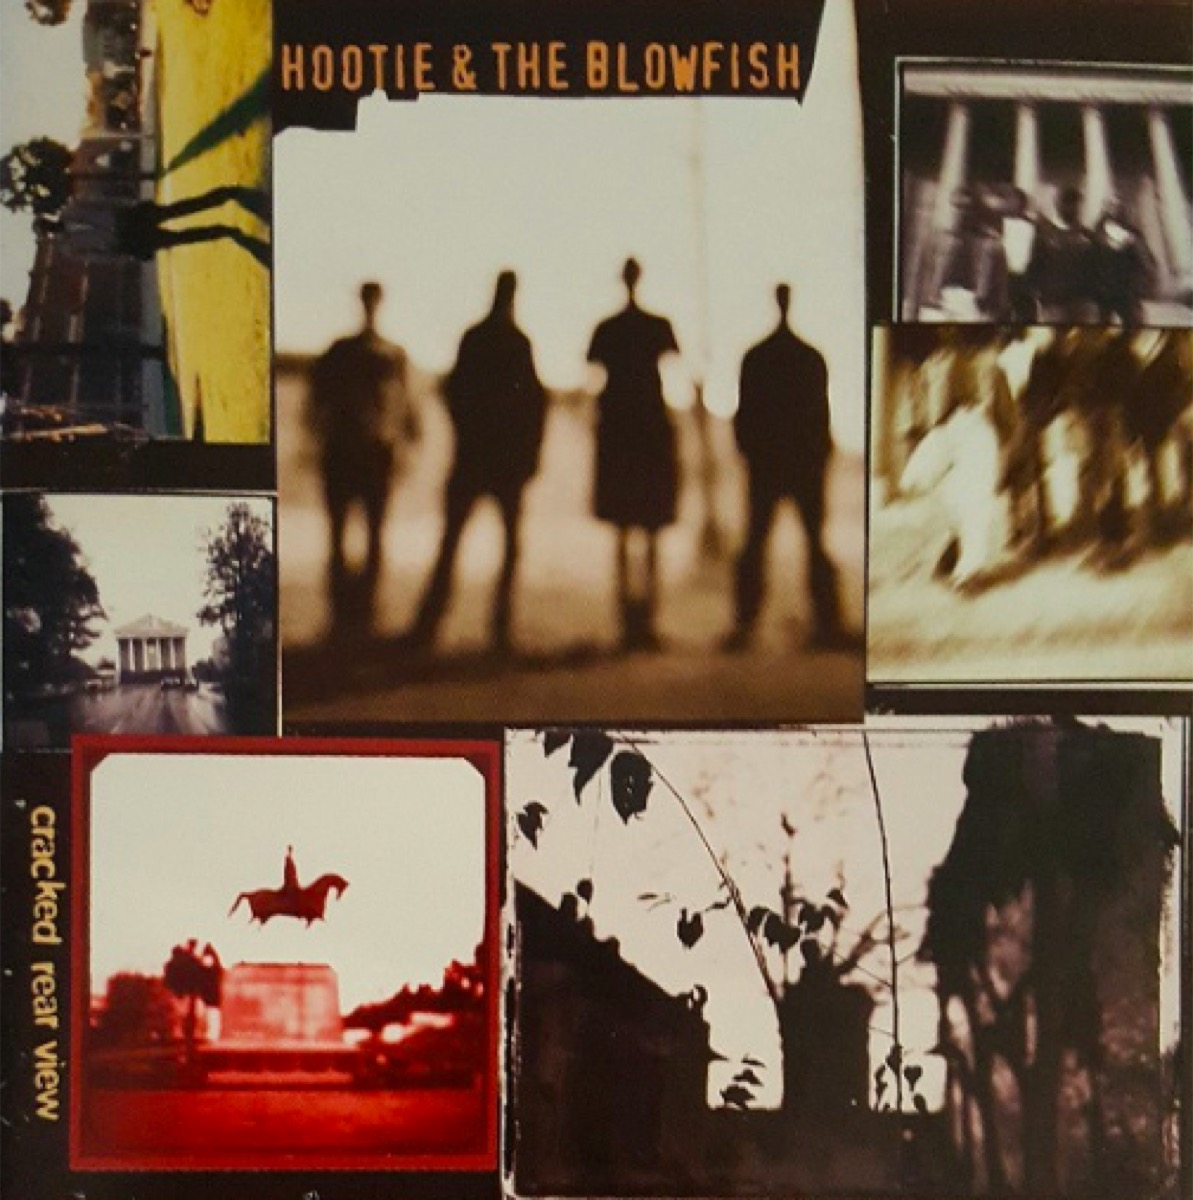 Cracked Rear View Hootie & The Blowfish album